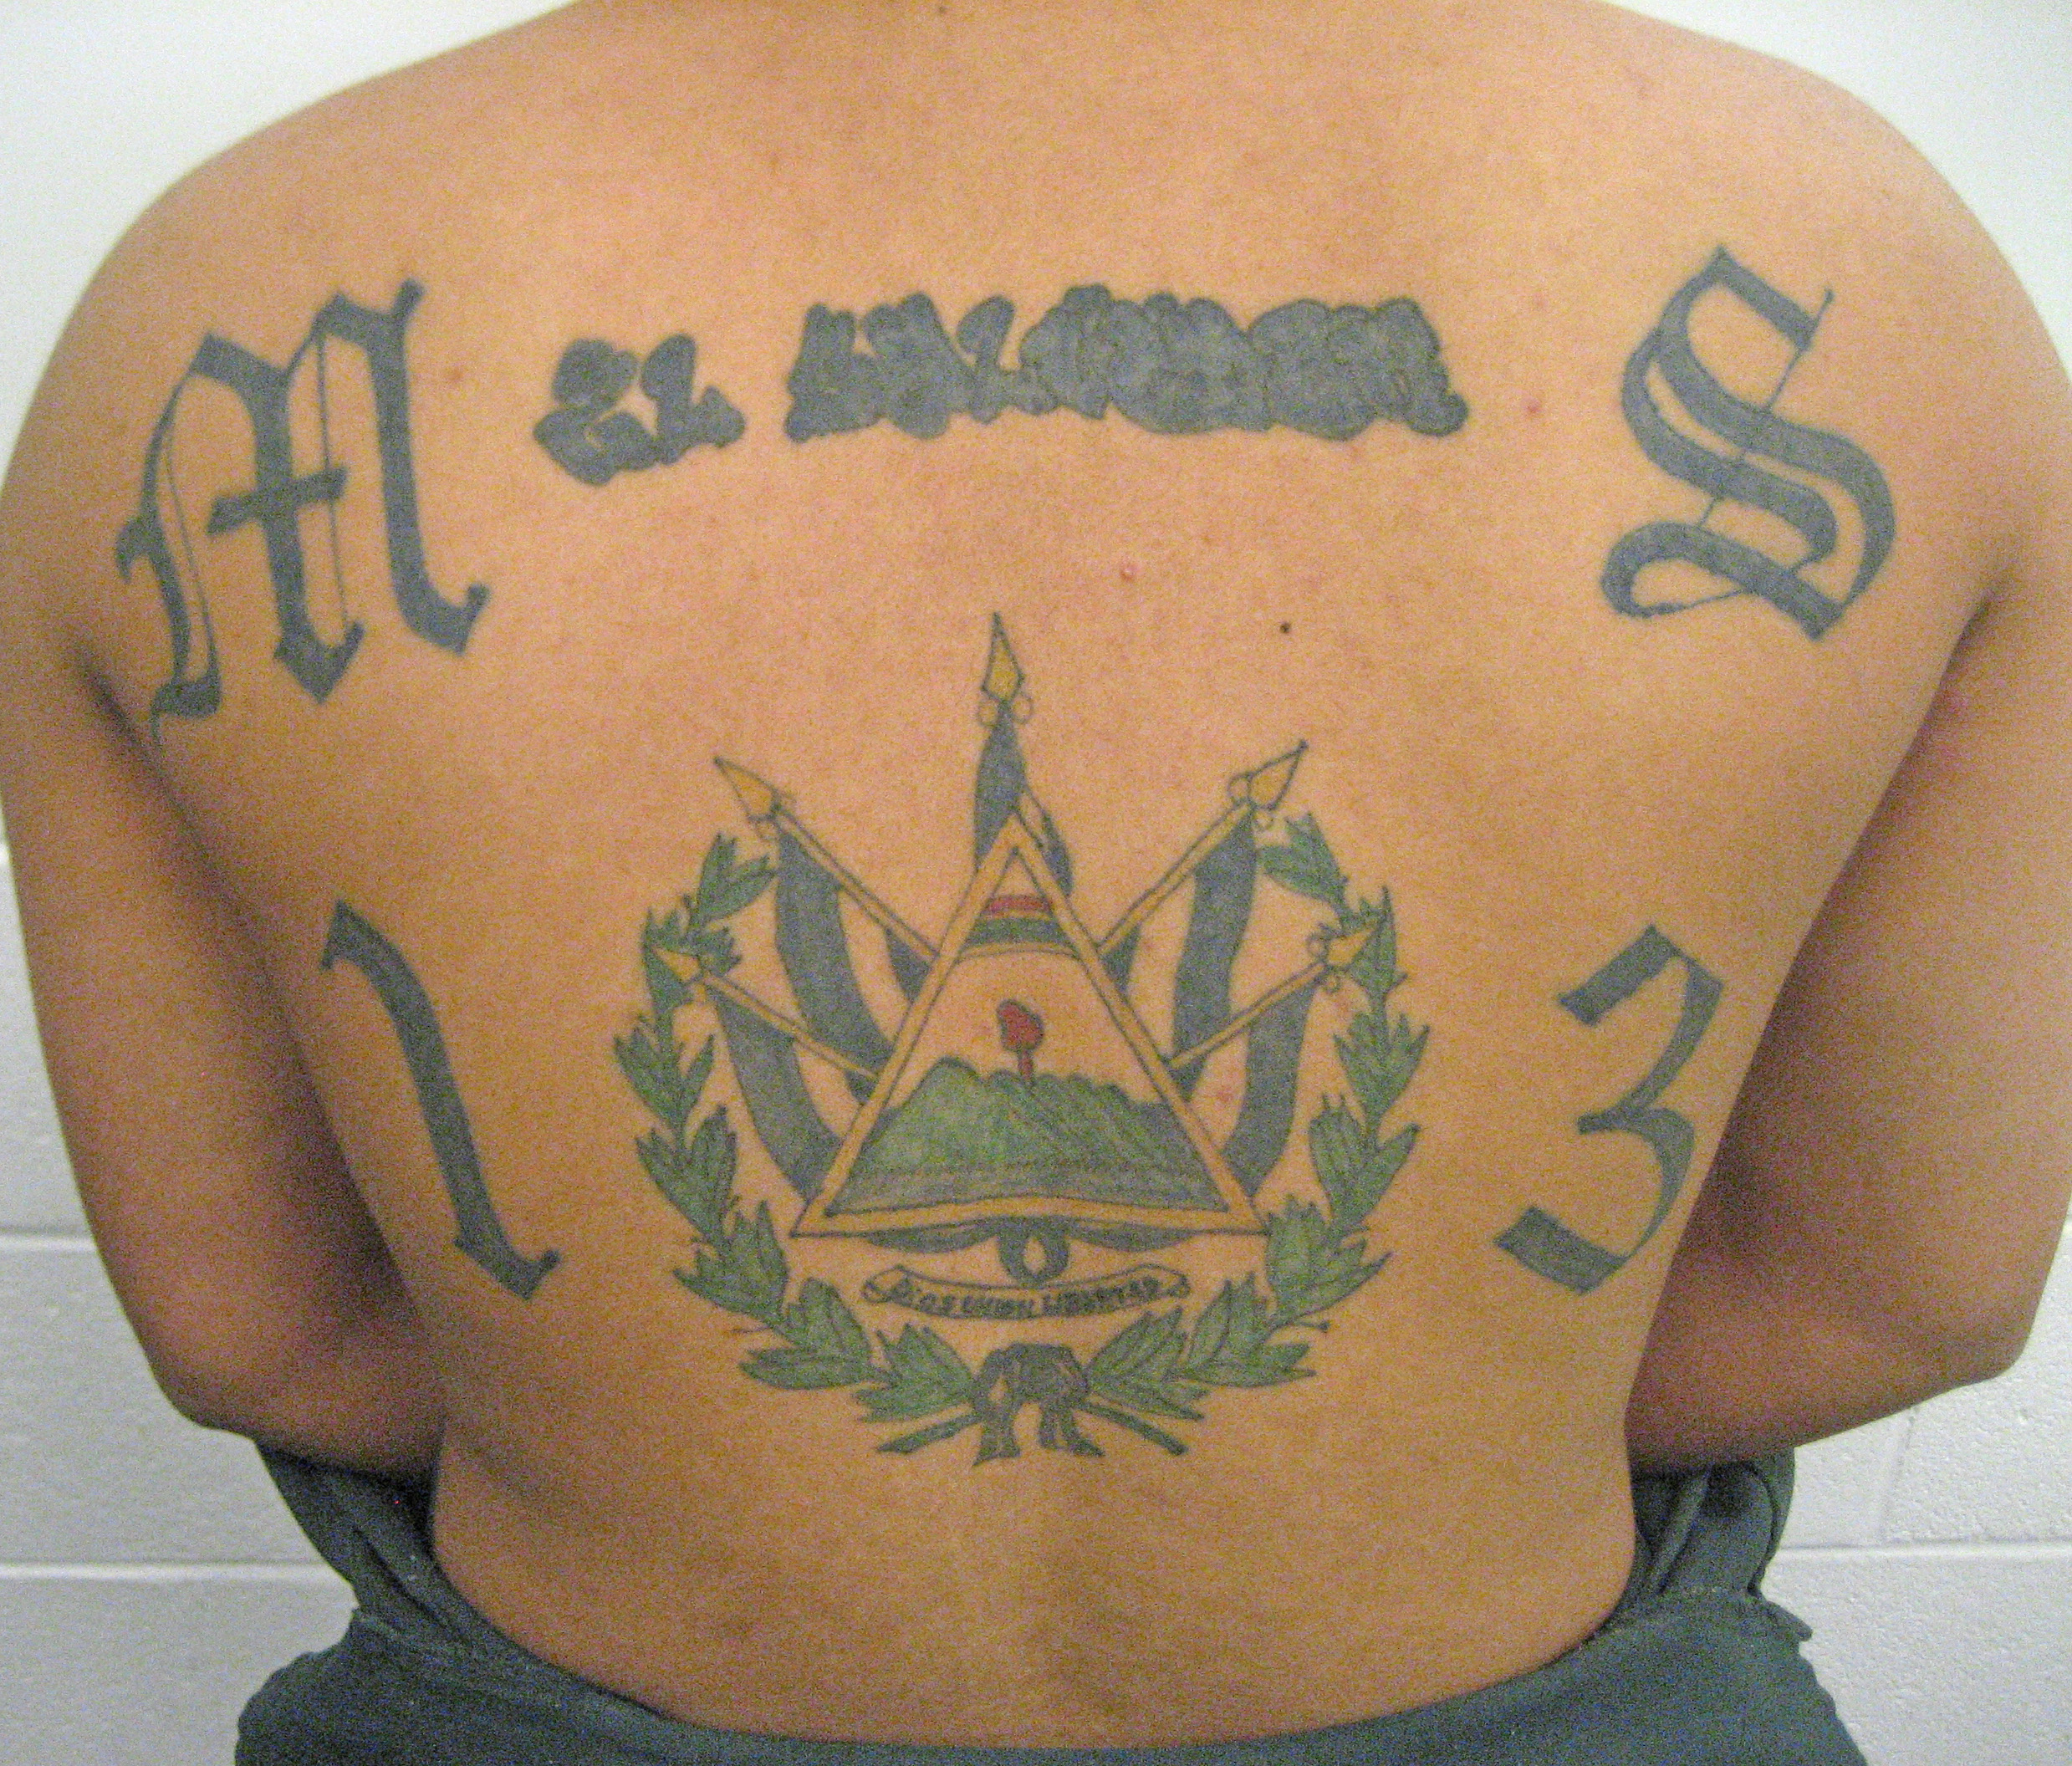 Description ms 13 tattoo 2